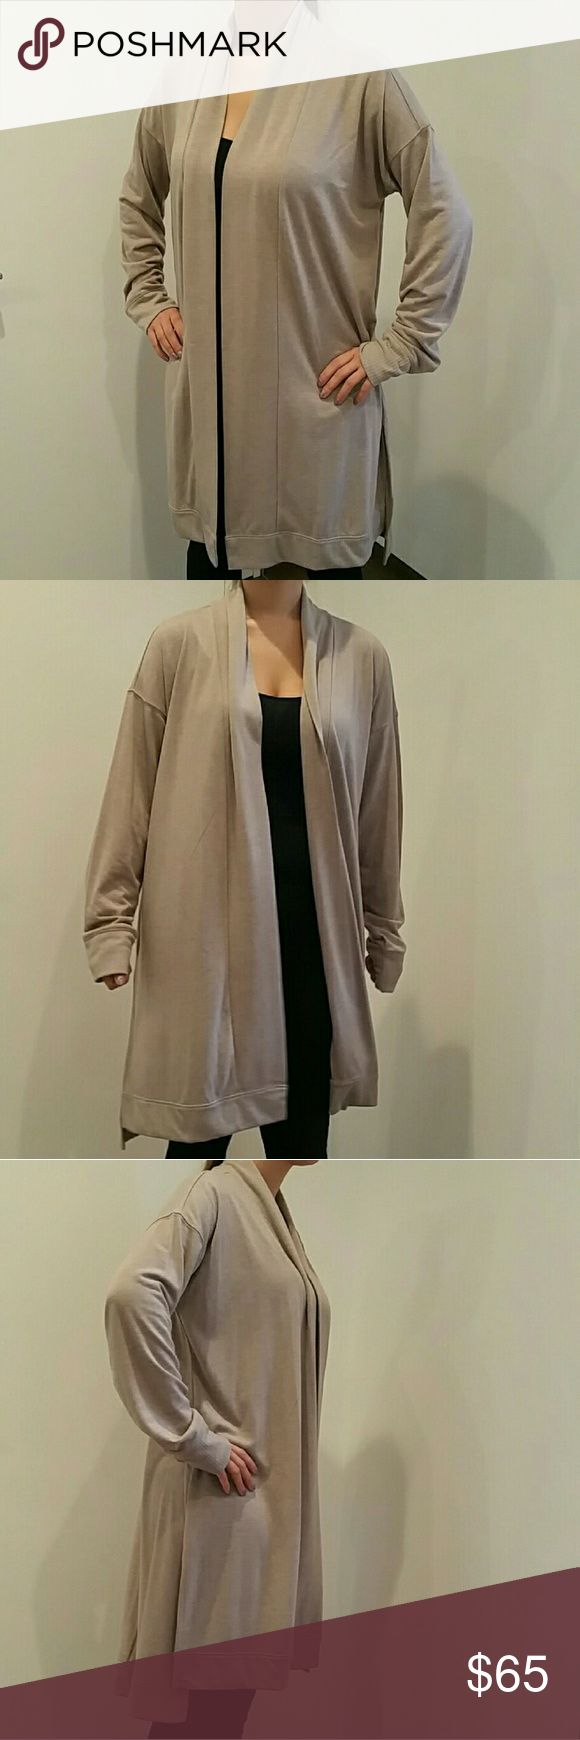 Anne Taylor LOFT Duster Anne Taylor LOFT Duster Size XL Color: Oatmeal  Long length. Shorter in front. Beautiful drape.  Longsleeve. Ribbed cuffs. Ann Taylor Jackets & Coats